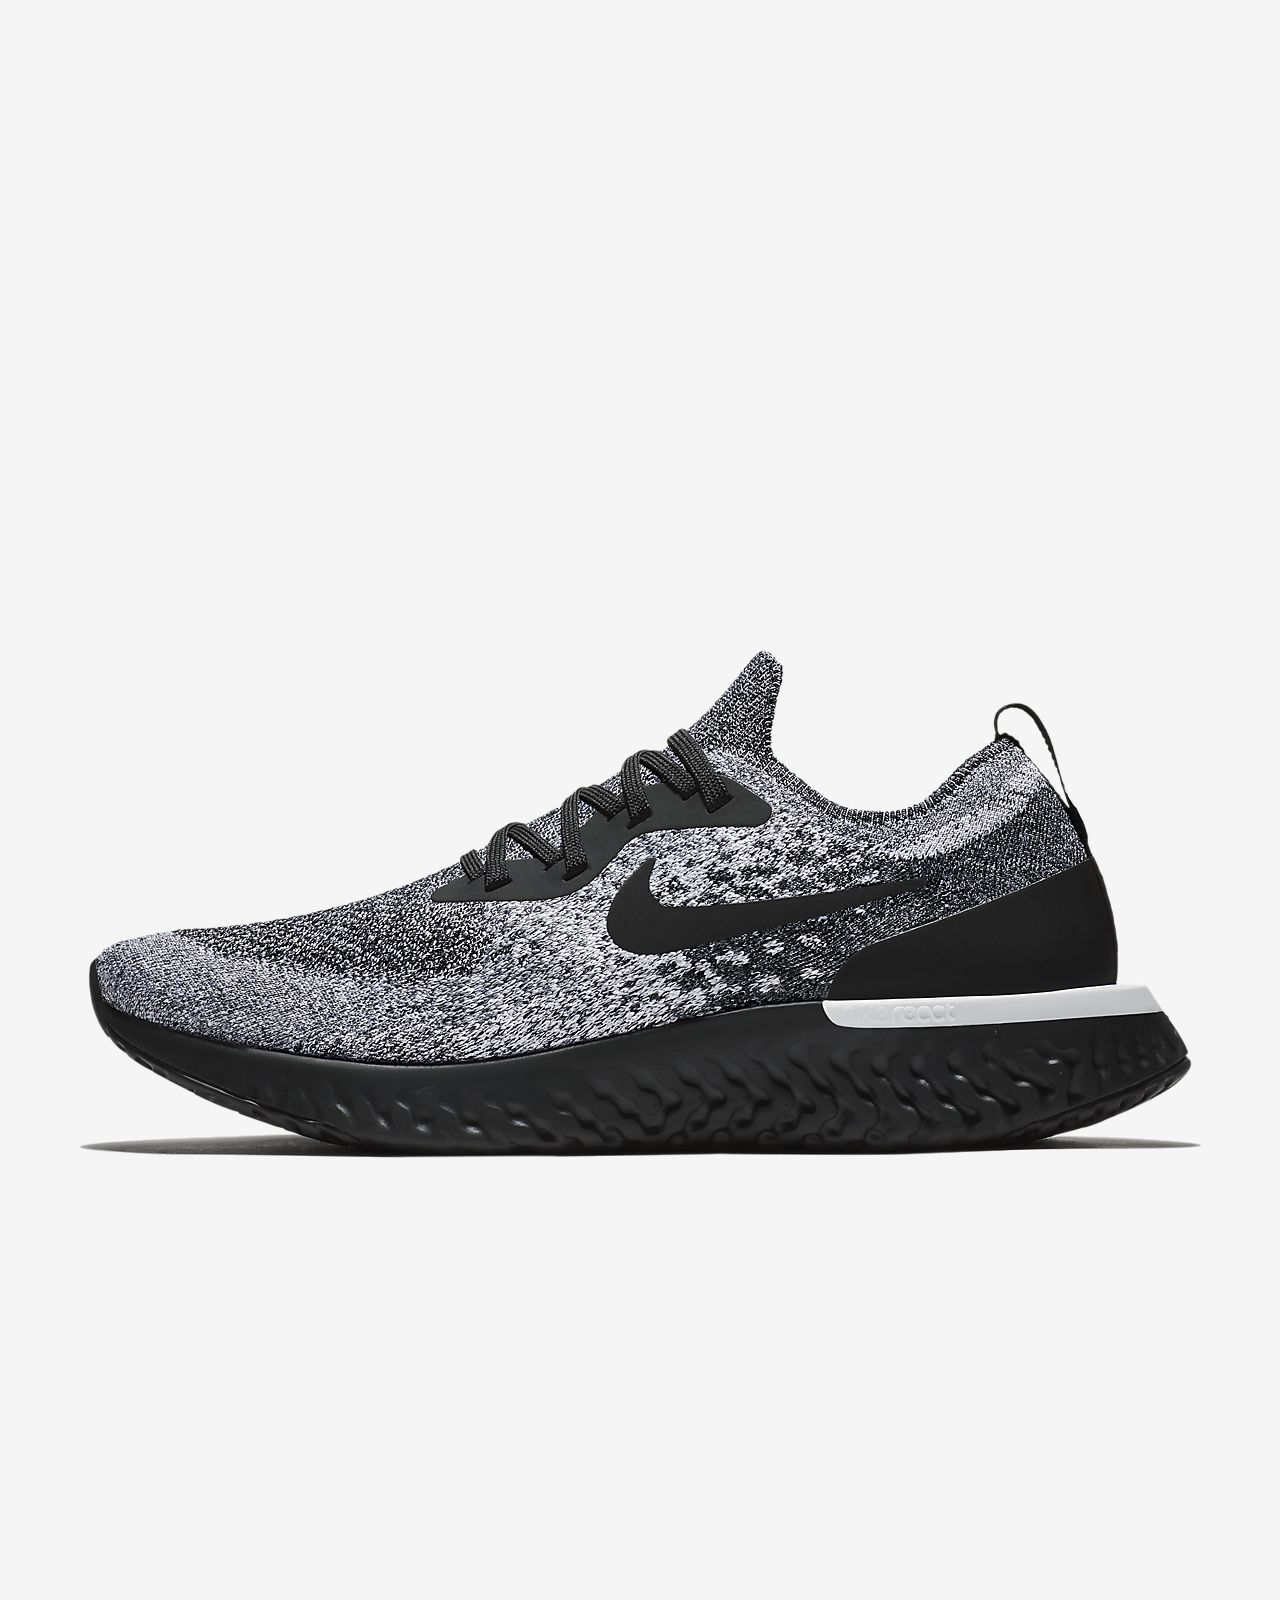 new product 0fcbf 88c8f Men s Running Shoe. Nike Epic React Flyknit